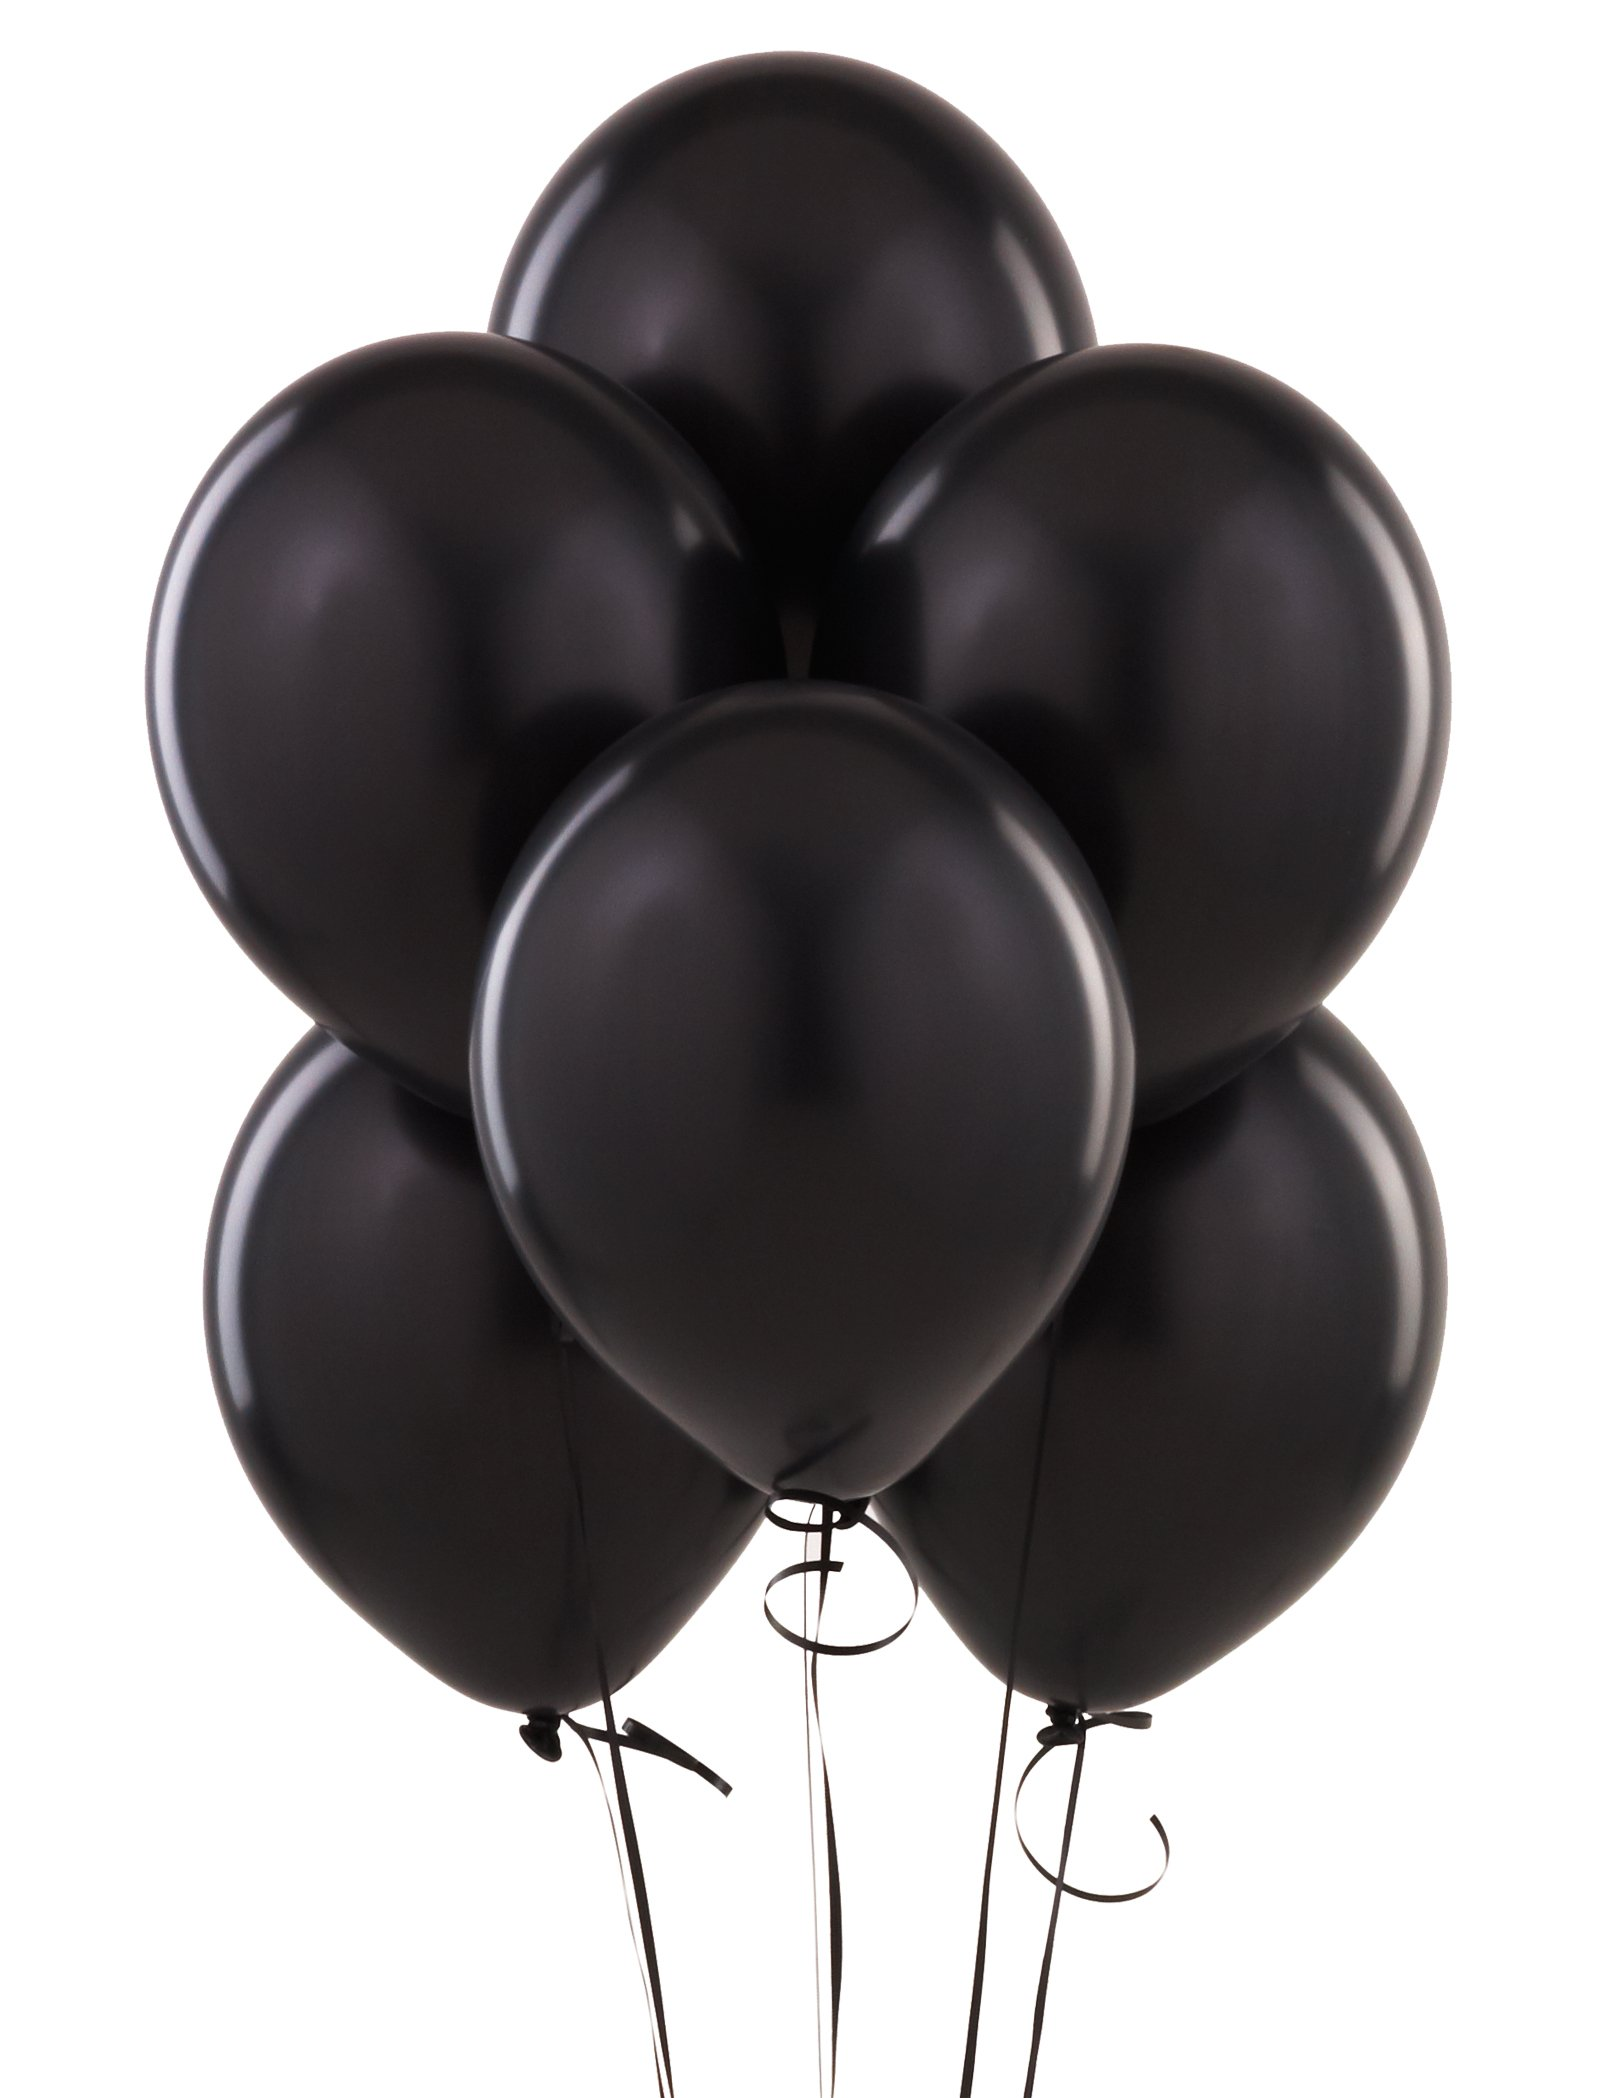 Pitch Black Latex Balloons (6 count)